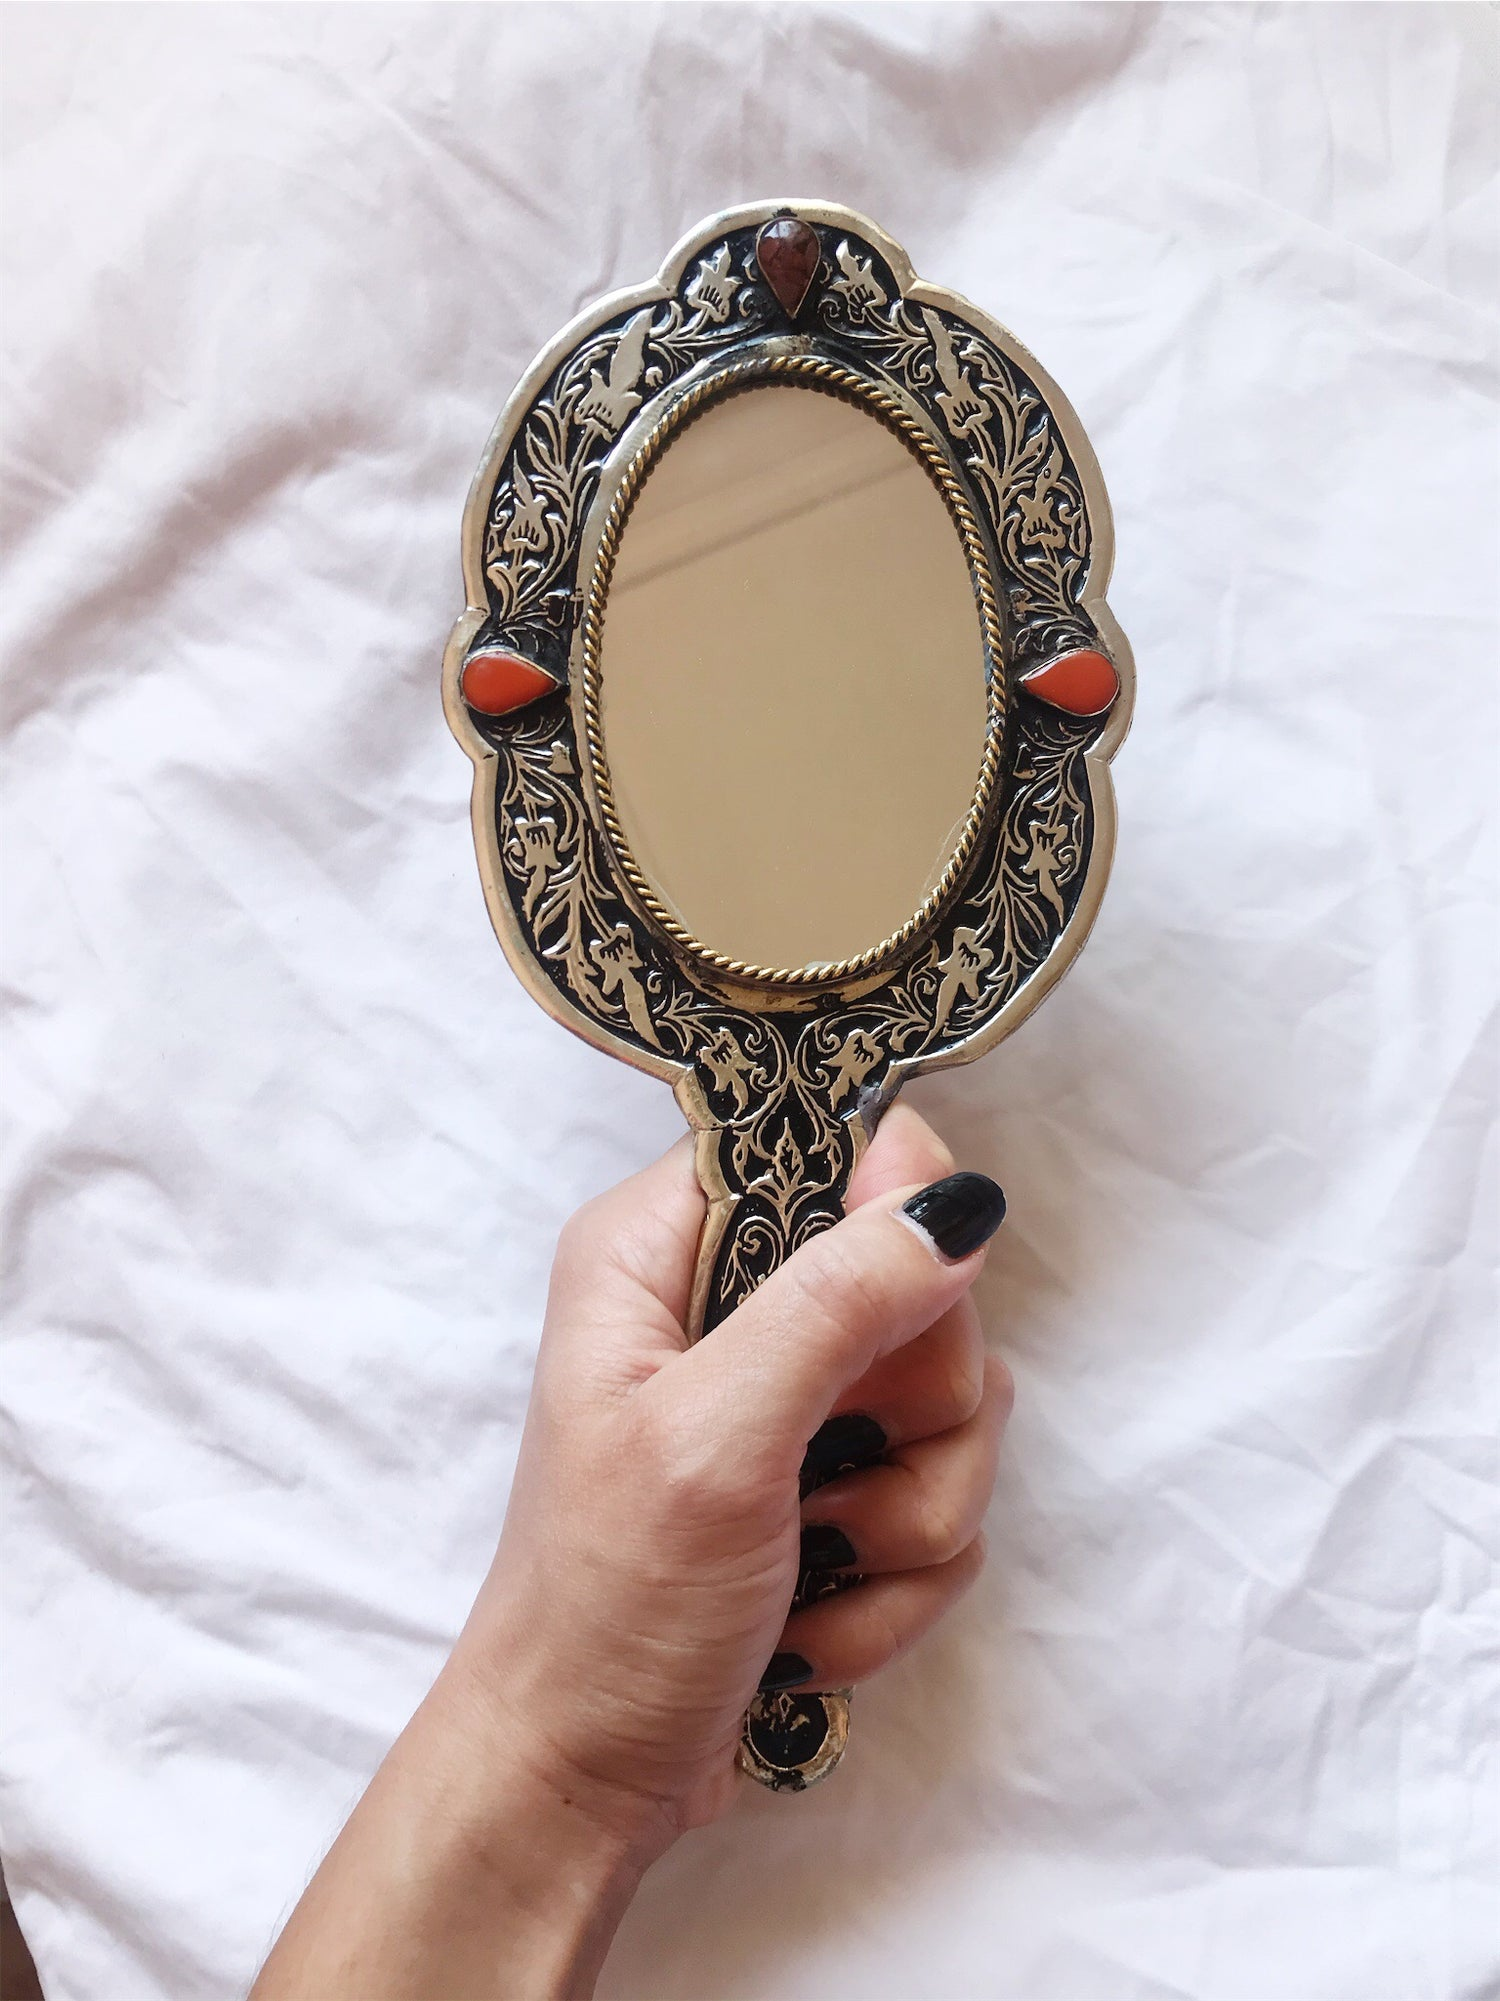 Image of SOLD OUT - MIROIR PORTE CHANCE